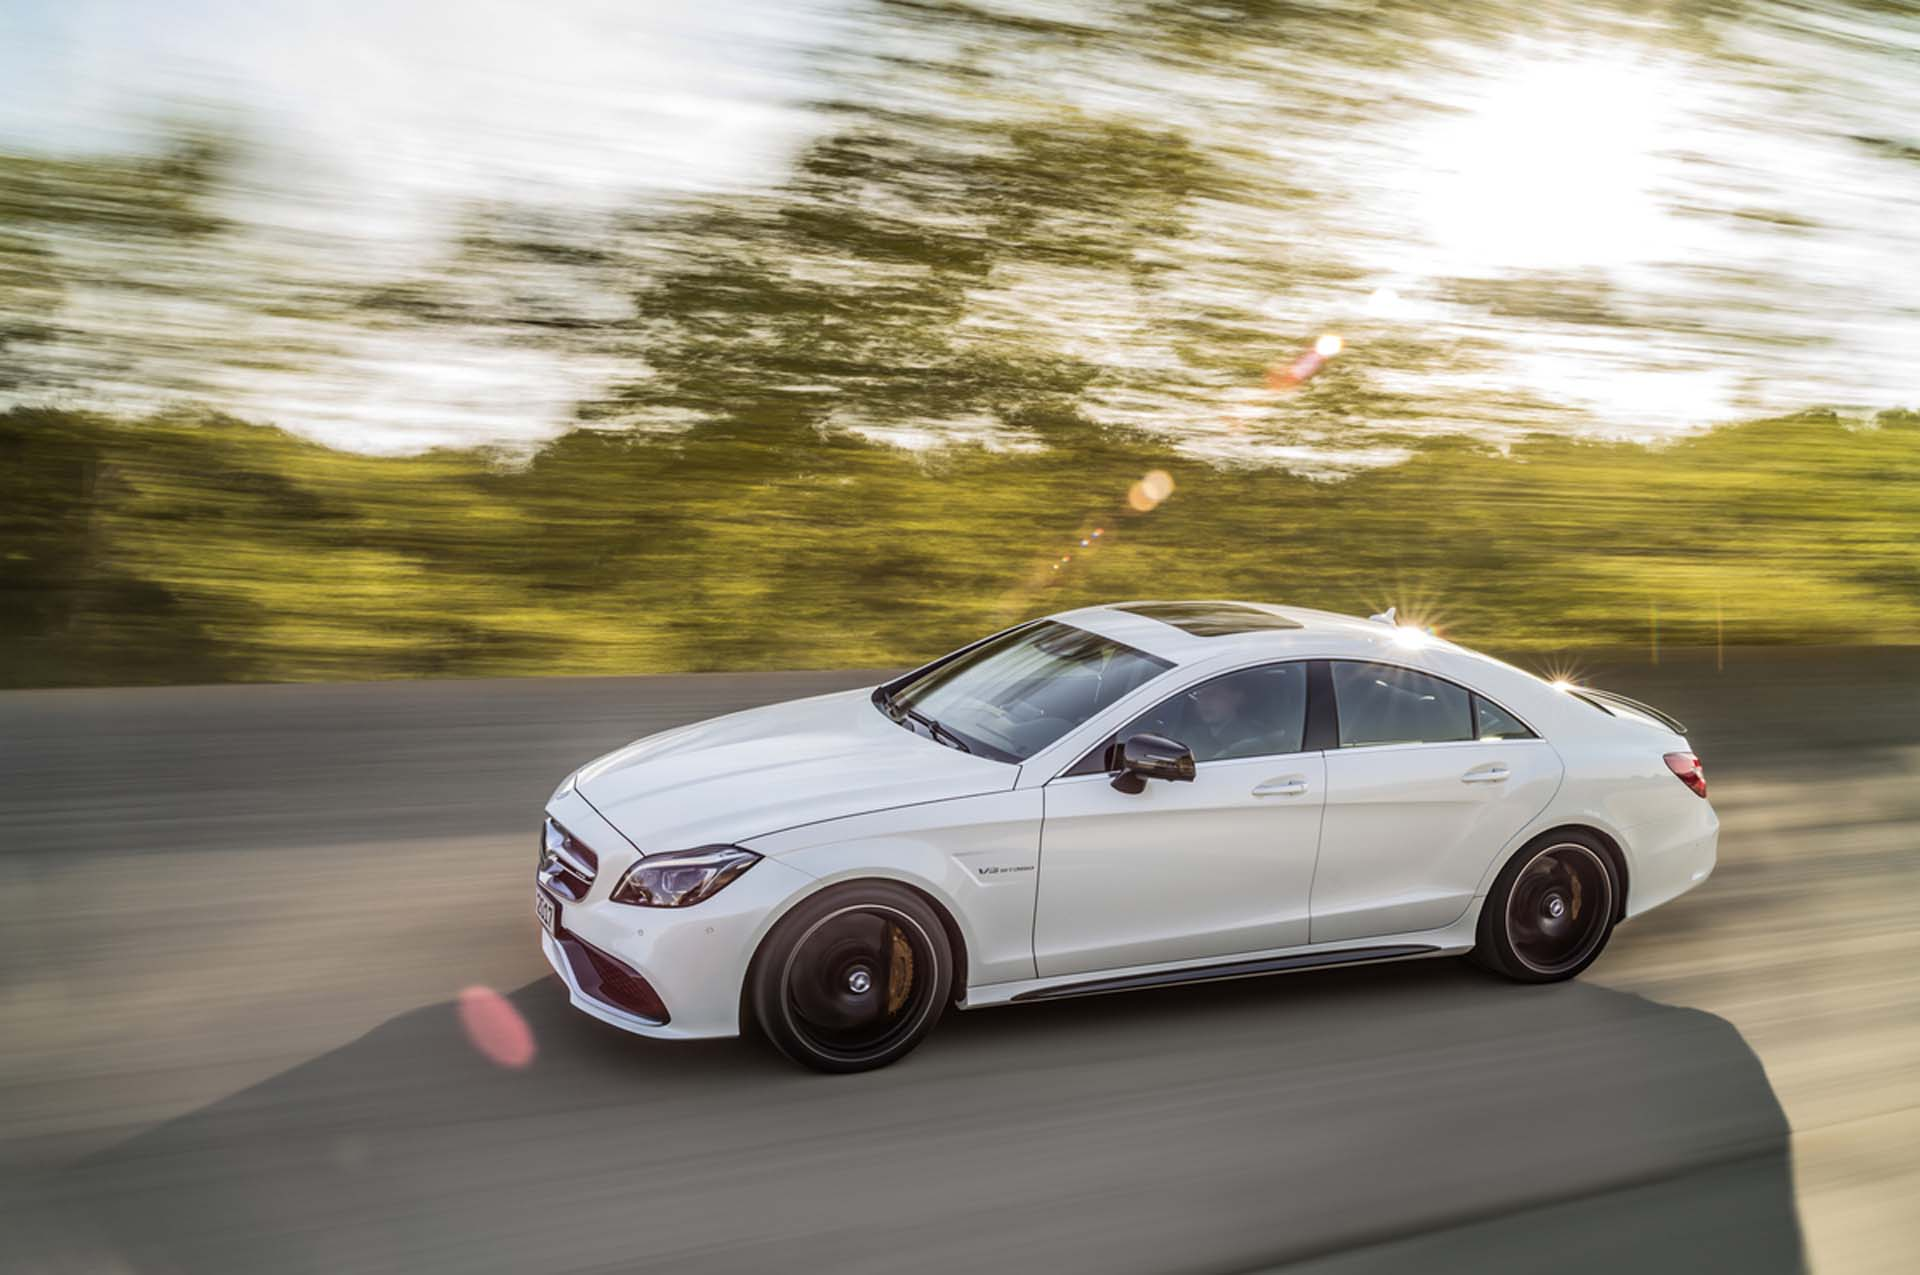 Colorado Springs Dodge >> 2017 Mercedes-Benz CLS Class Review, Ratings, Specs, Prices, and Photos - The Car Connection